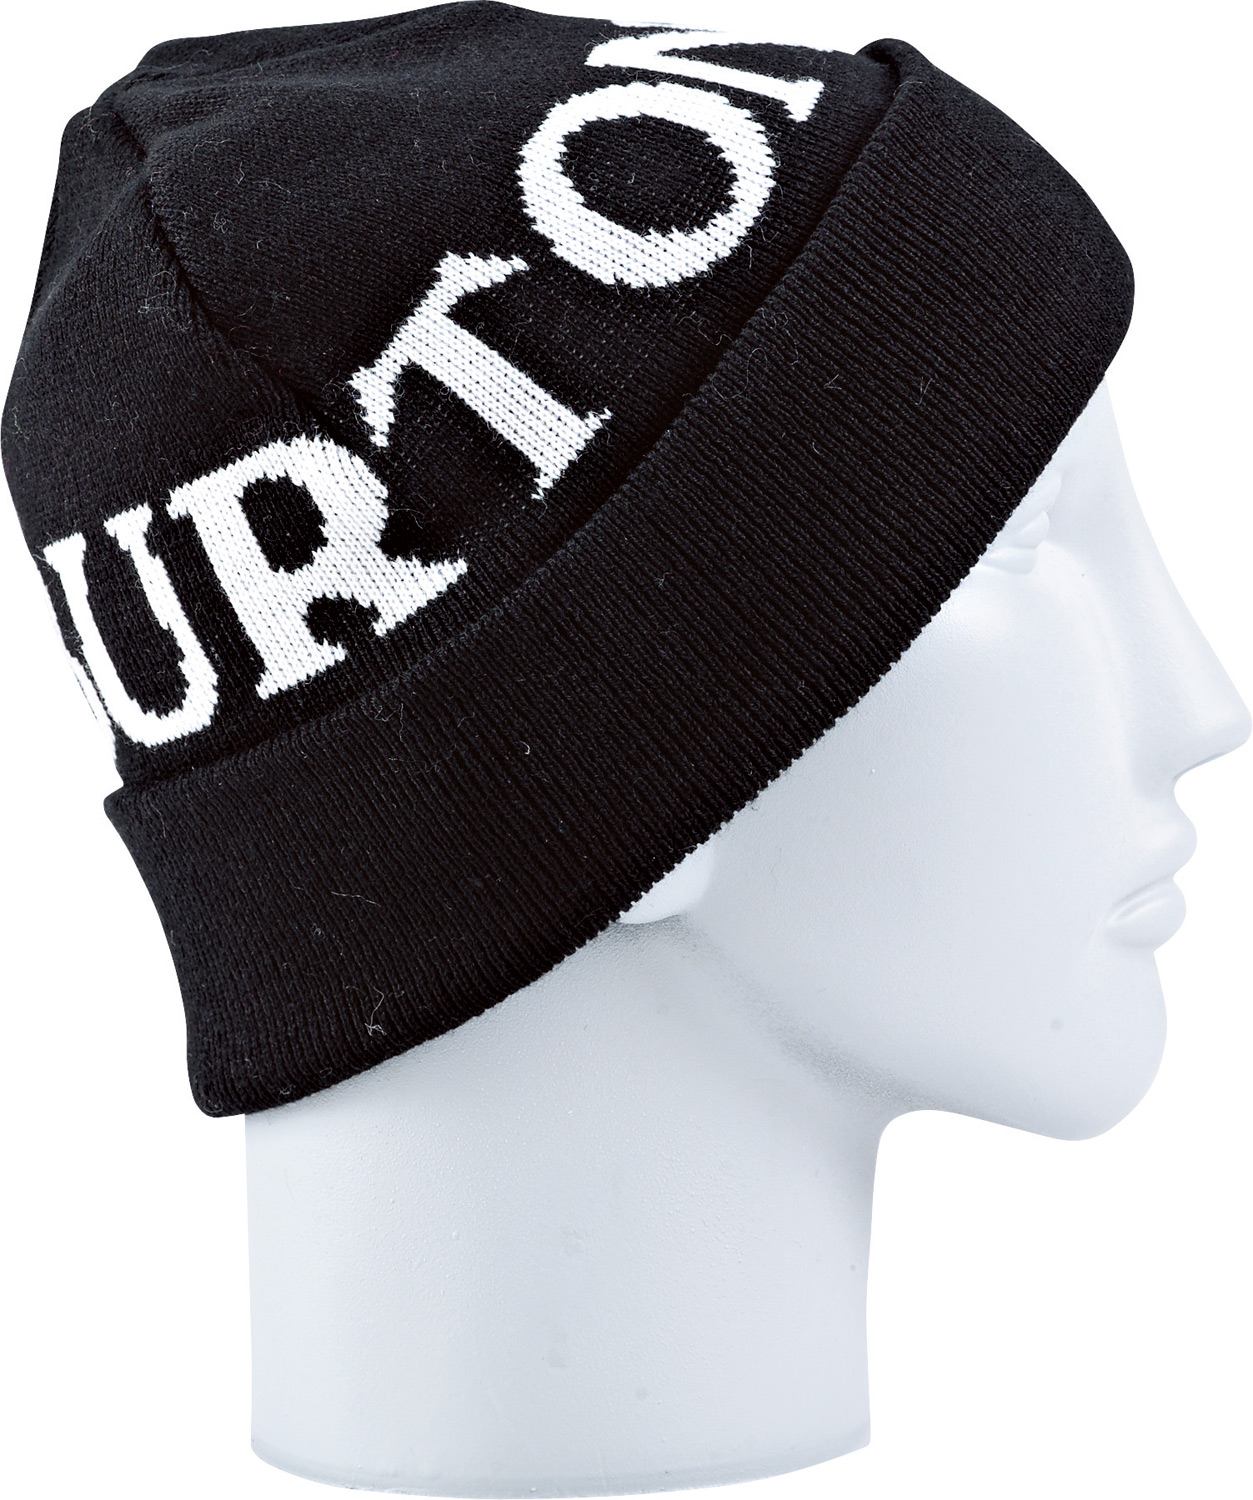 Snowboard Stay warm in style with this cool new beanie you'll love.The Burton Duxbury Beanie features a simple design with the Burton brand logo in a large print surrounding the beanie for added style.  Fold Up with Skully Fit   Burton Word Mark Branding   One Size Fits All   100% Acrylic - $13.95